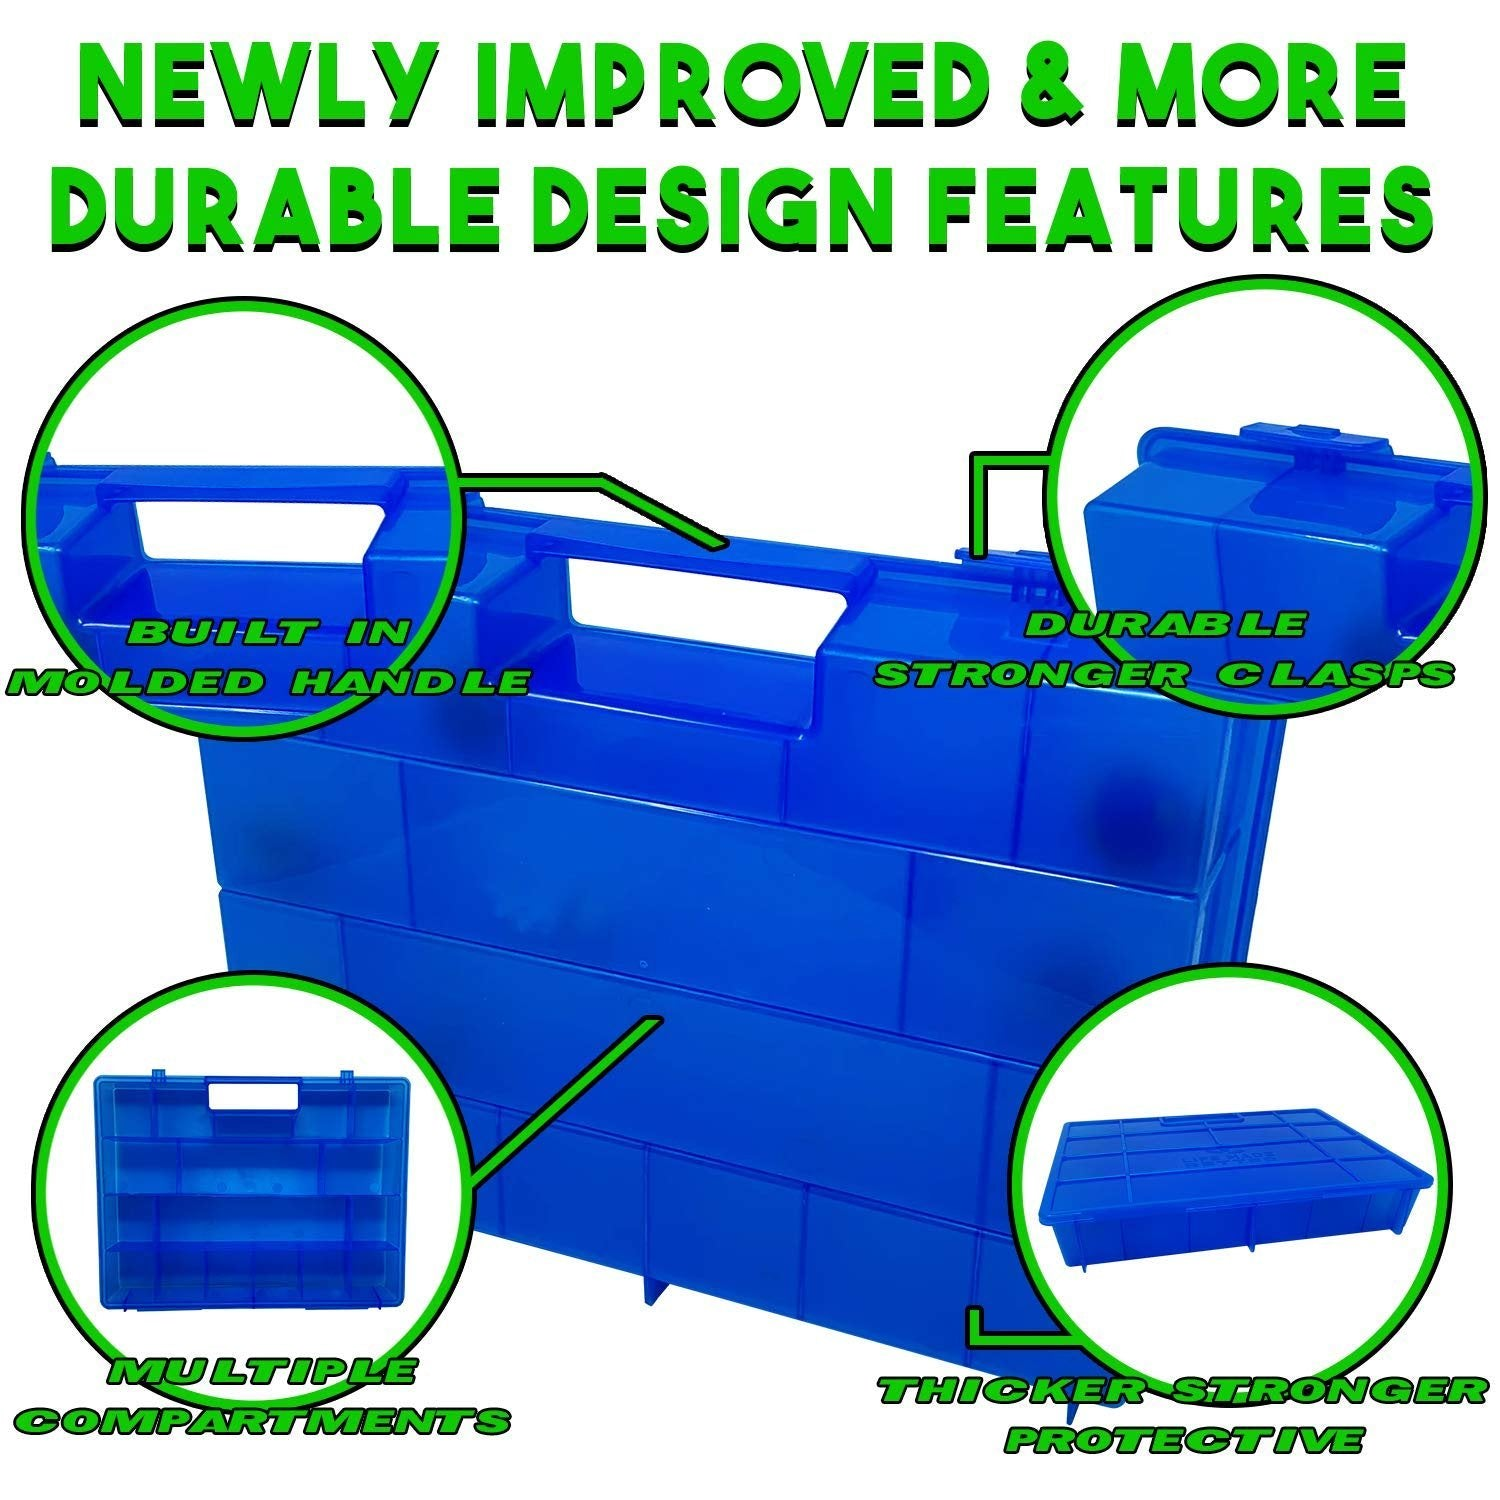 Life Made Better, Fun Favorite Blue Toy Carrying Box for Storage & Traveling, Compatible with Splashlings, Figures & Playset Organization Accessory Created by LMB